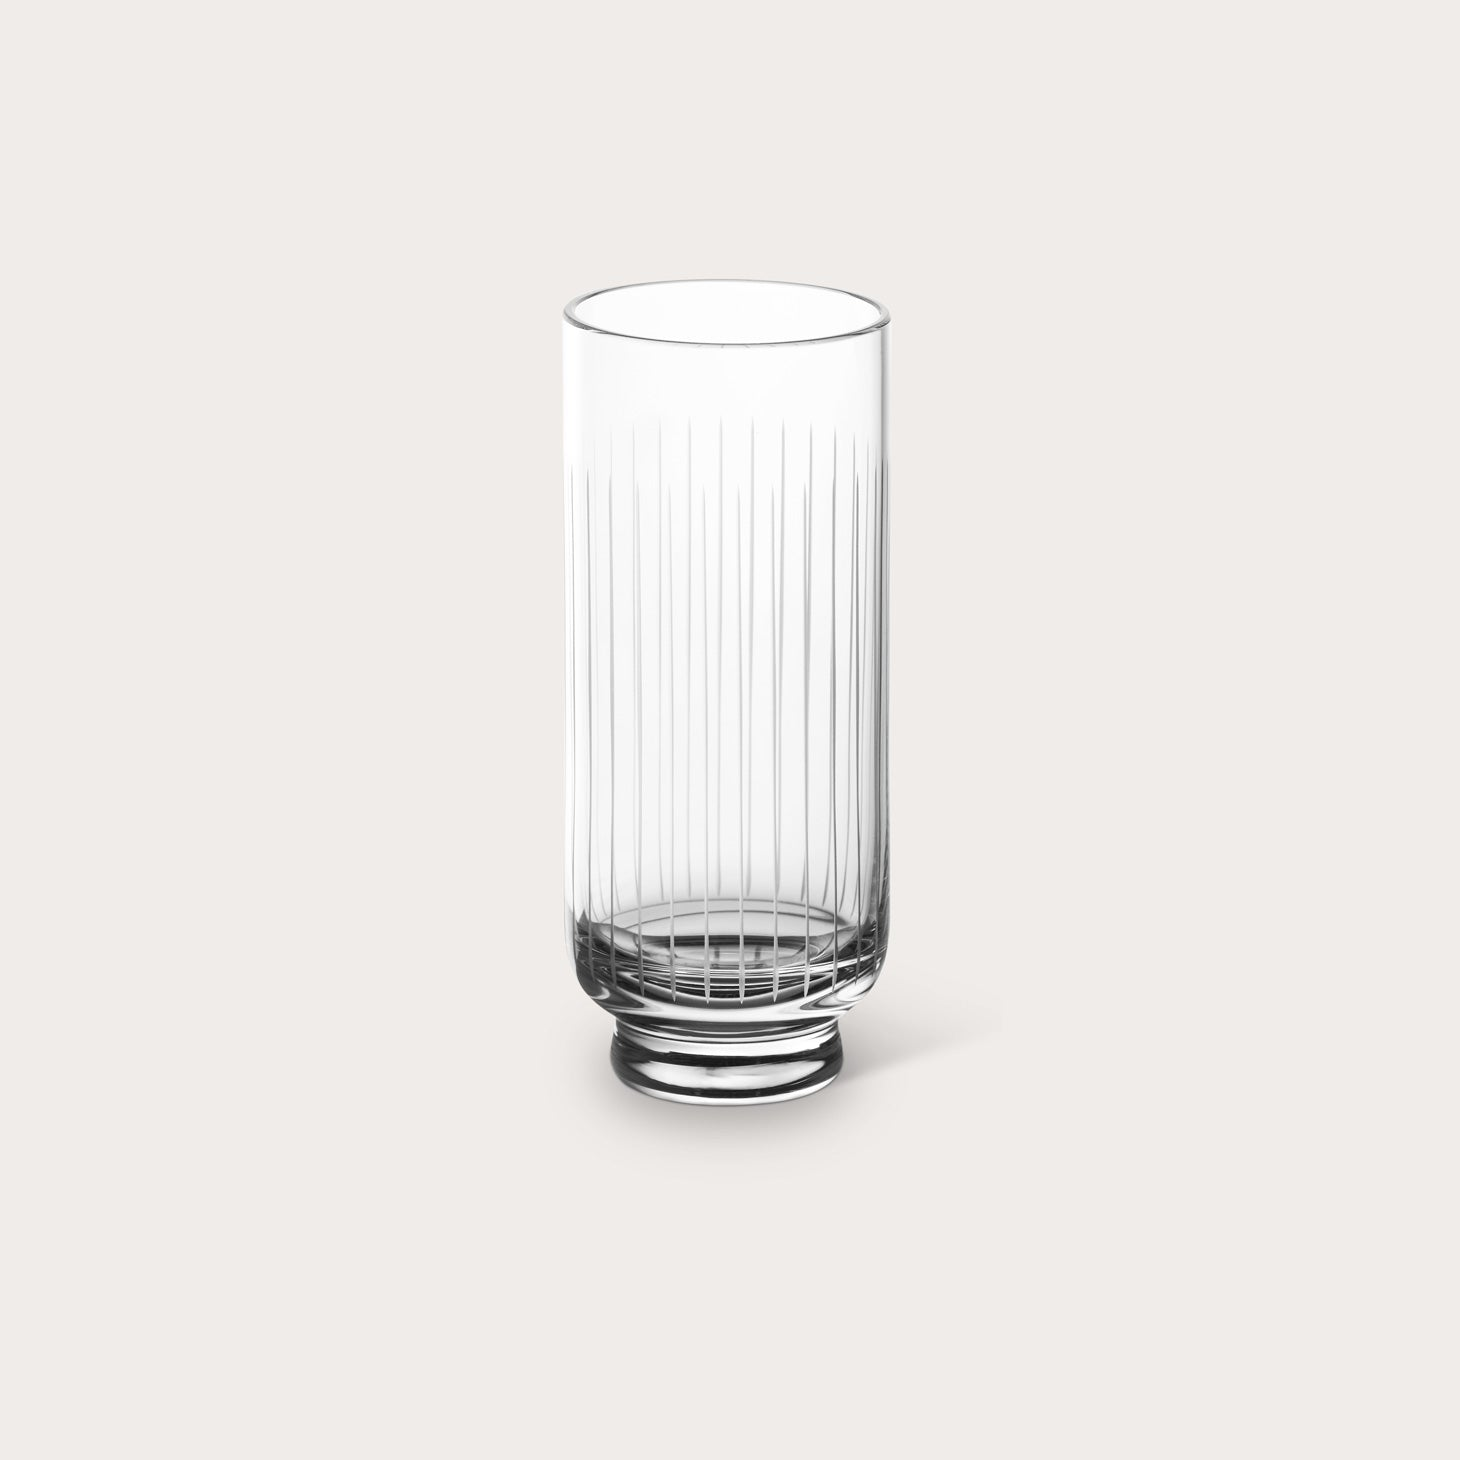 Otto Water Glass Set of 2 Accessories Yabu Pushelberg Designer Furniture Sku: 110-100-10013